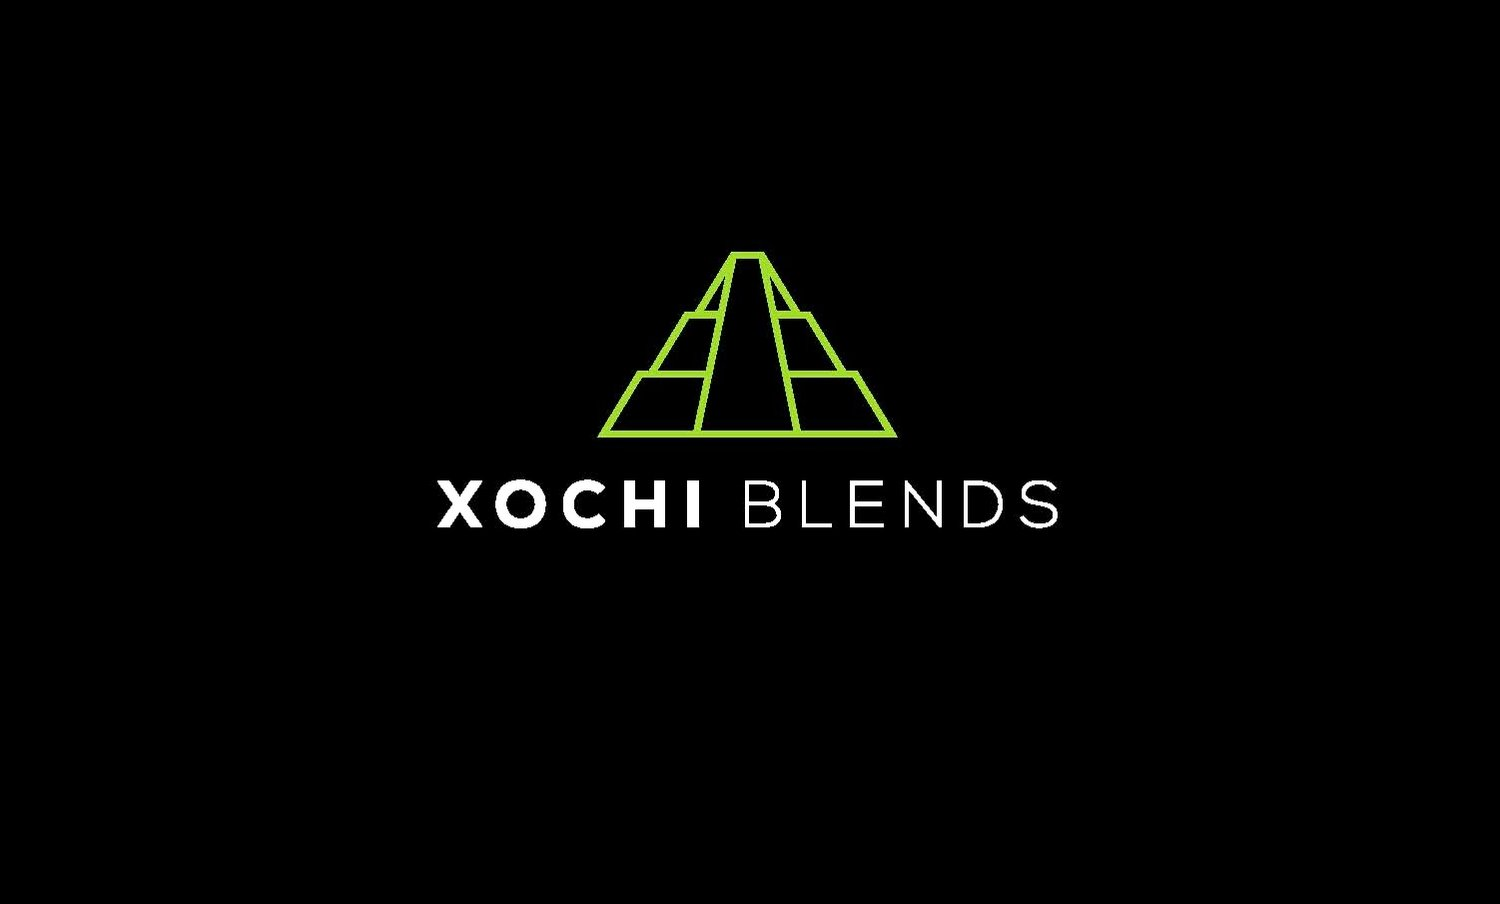 Xochi Blends